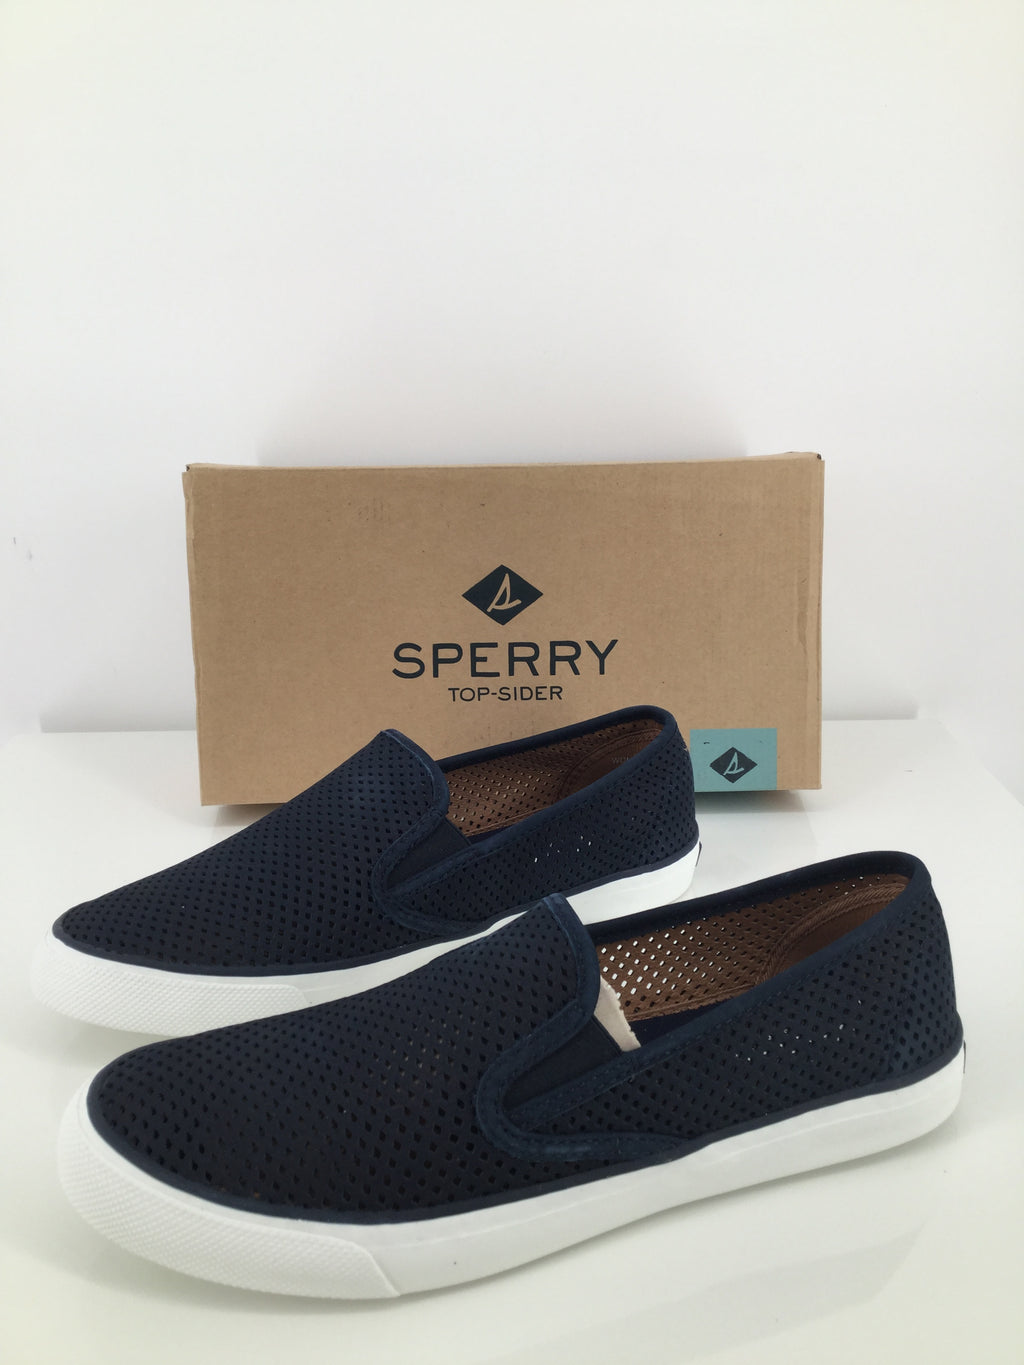 Sperry Shoes Flats Size:9.5